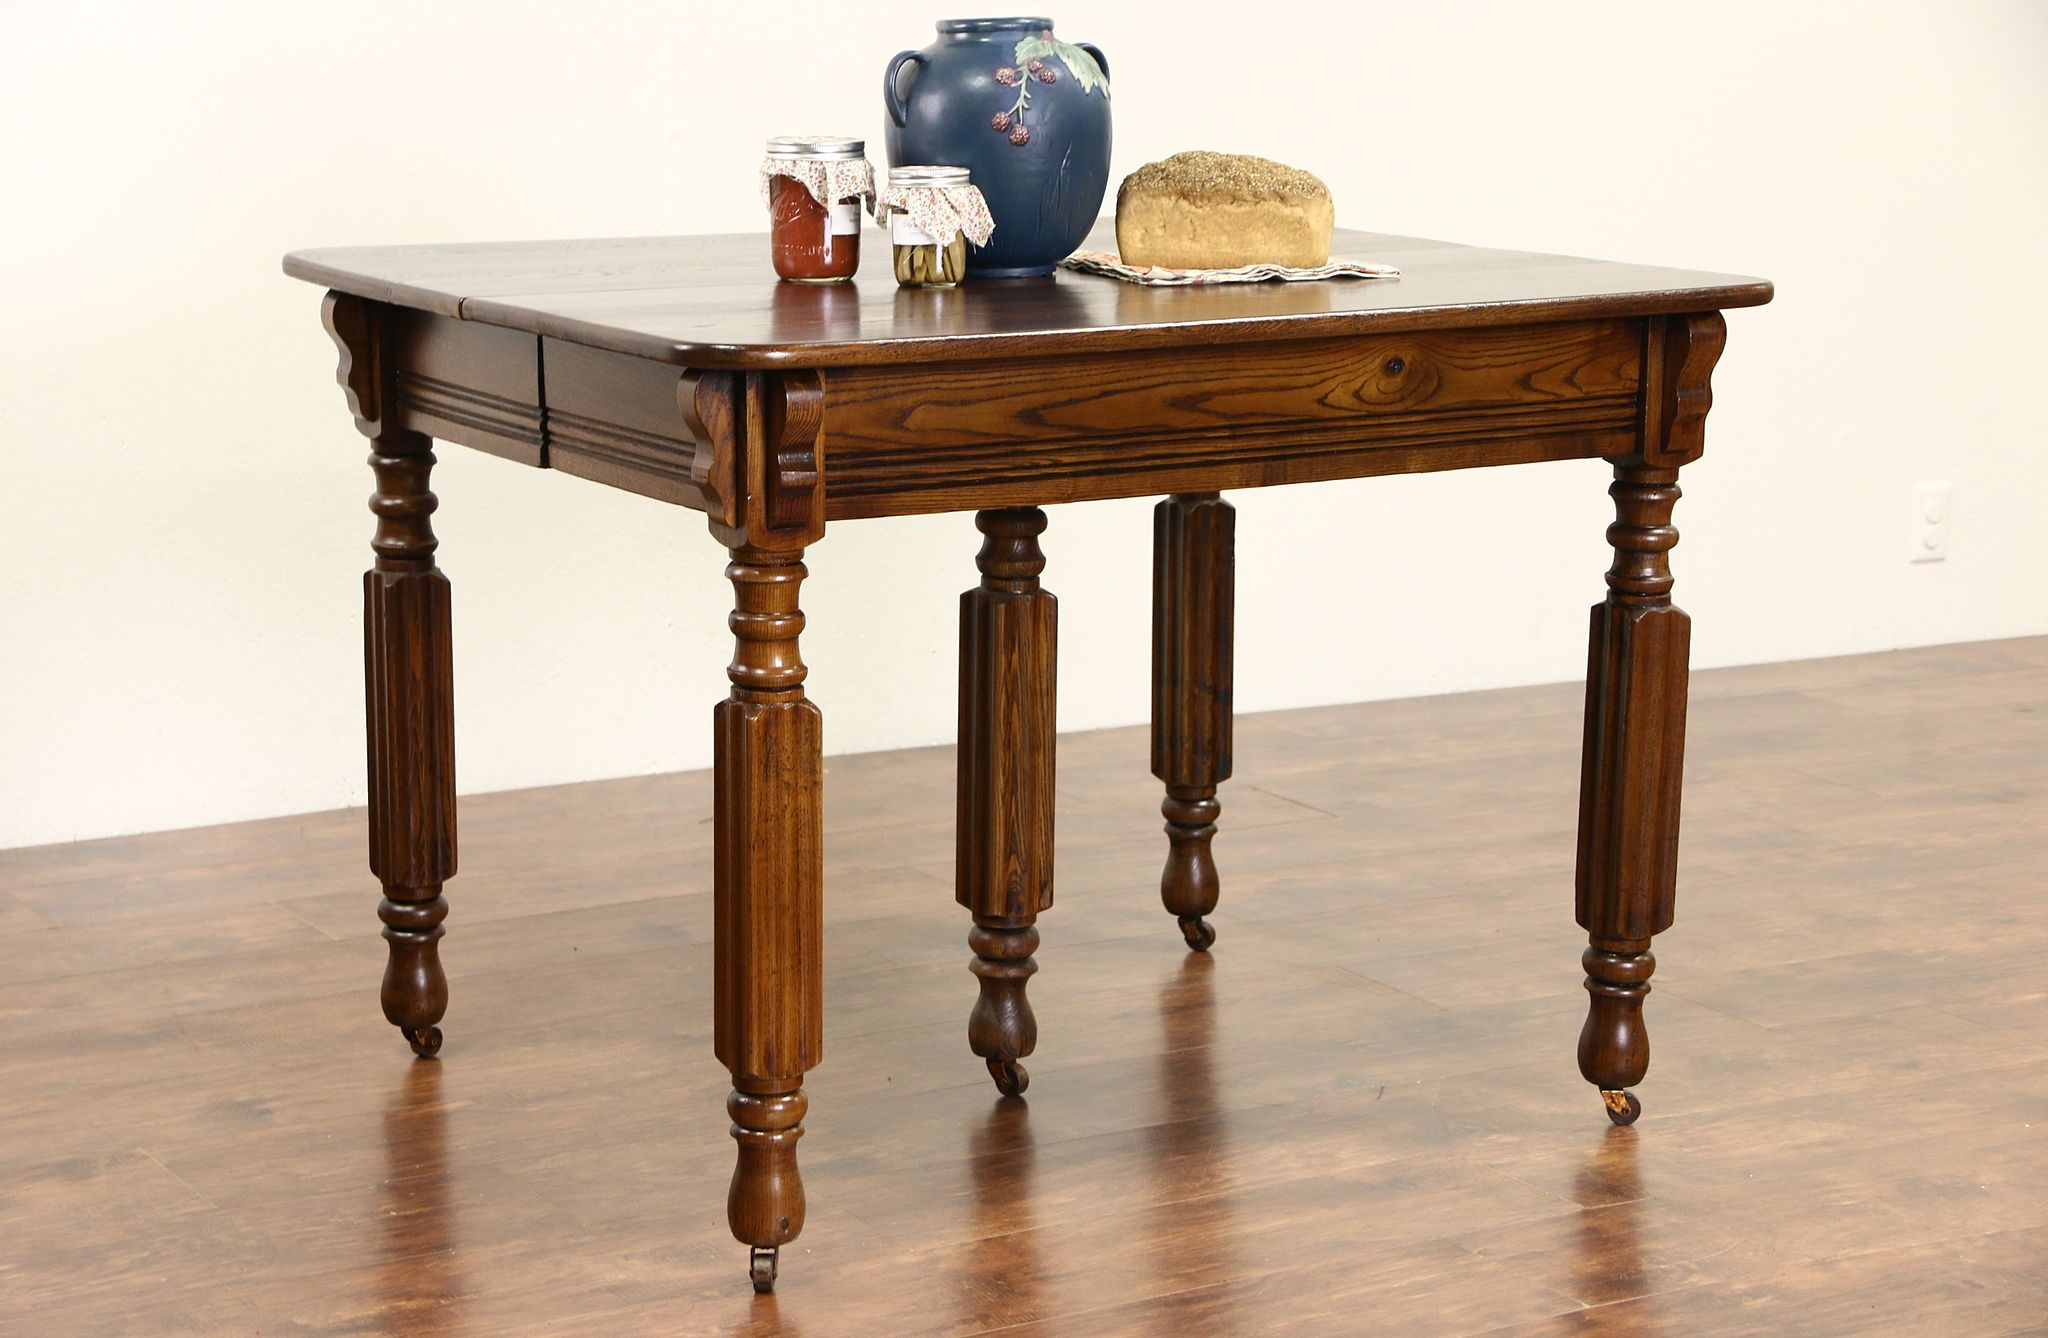 Victorian 1900 Antique Ash Dining Table 6 Leaves 5 Legs Extends 9